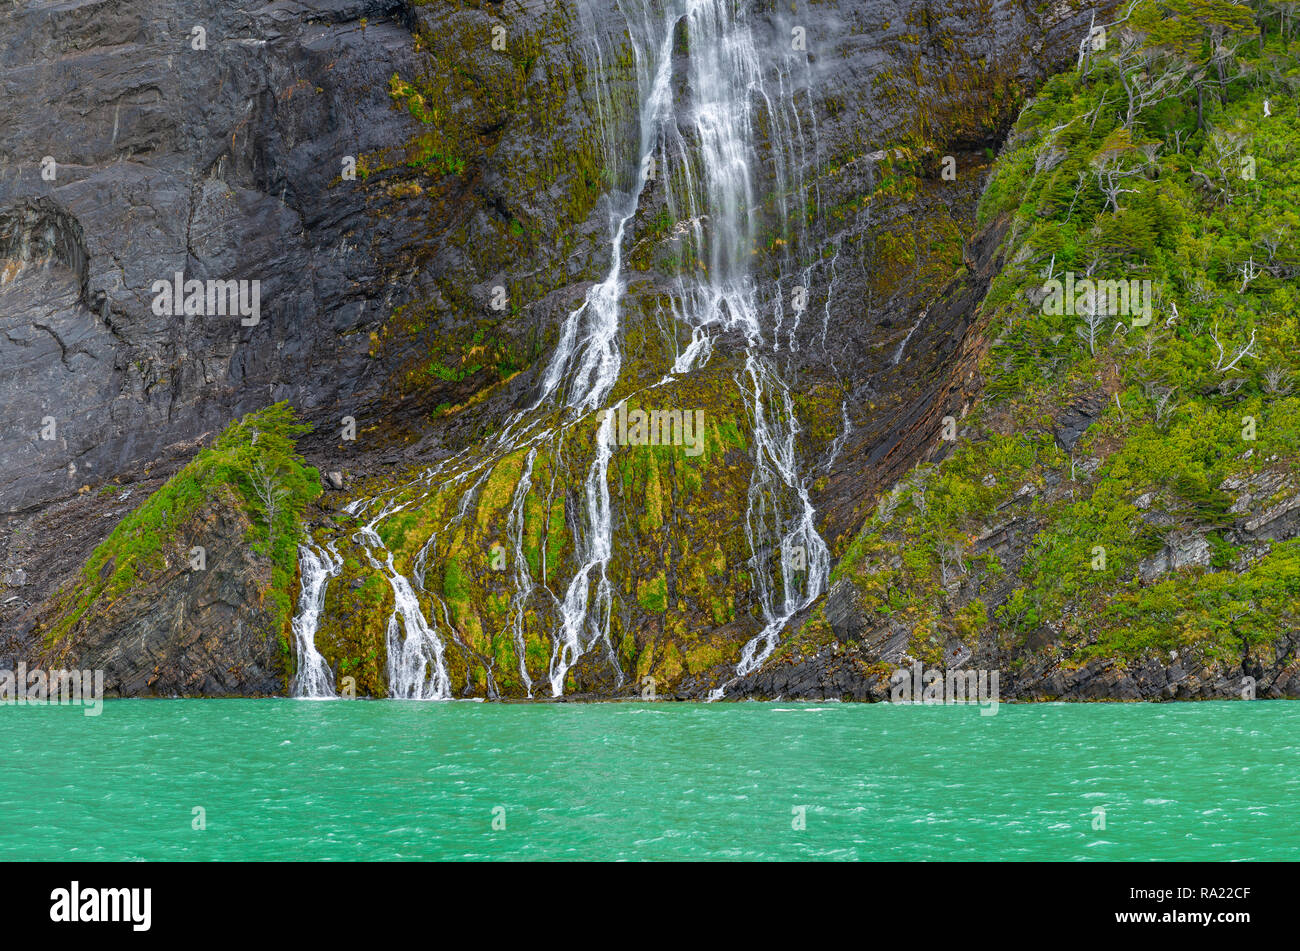 A wonderful waterfall along a cliff inside the Bernardo O'Higgins National Park near Puerto Natales, Patagonia, Chile. - Stock Image